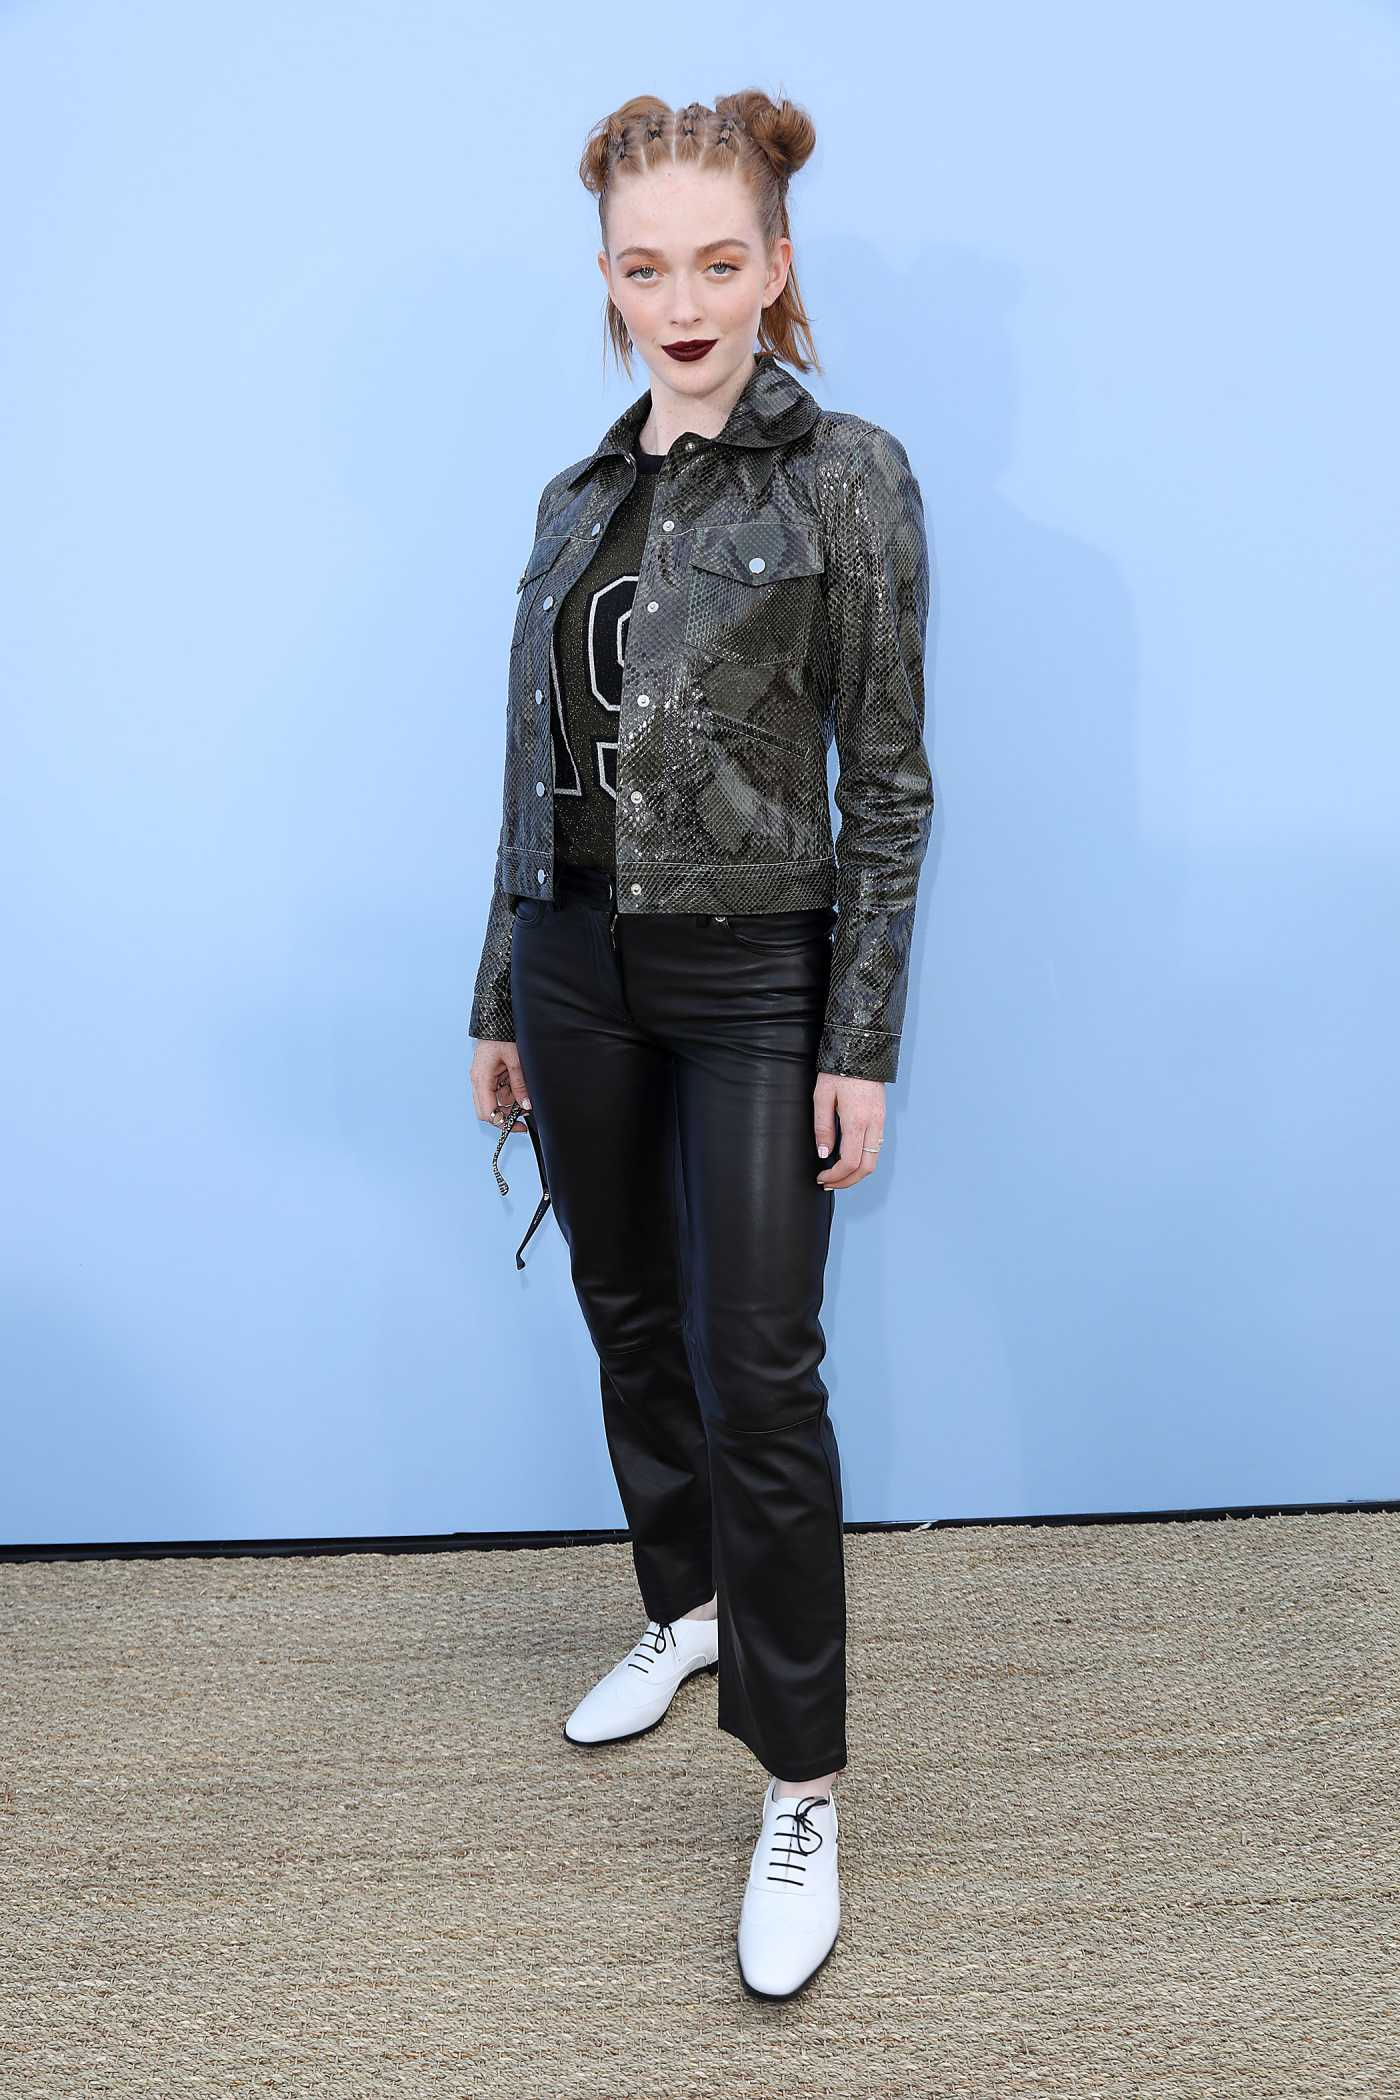 Larsen Thompson Attends the Michael Kors Show During New York Fashion Week in New York 09/11/2019